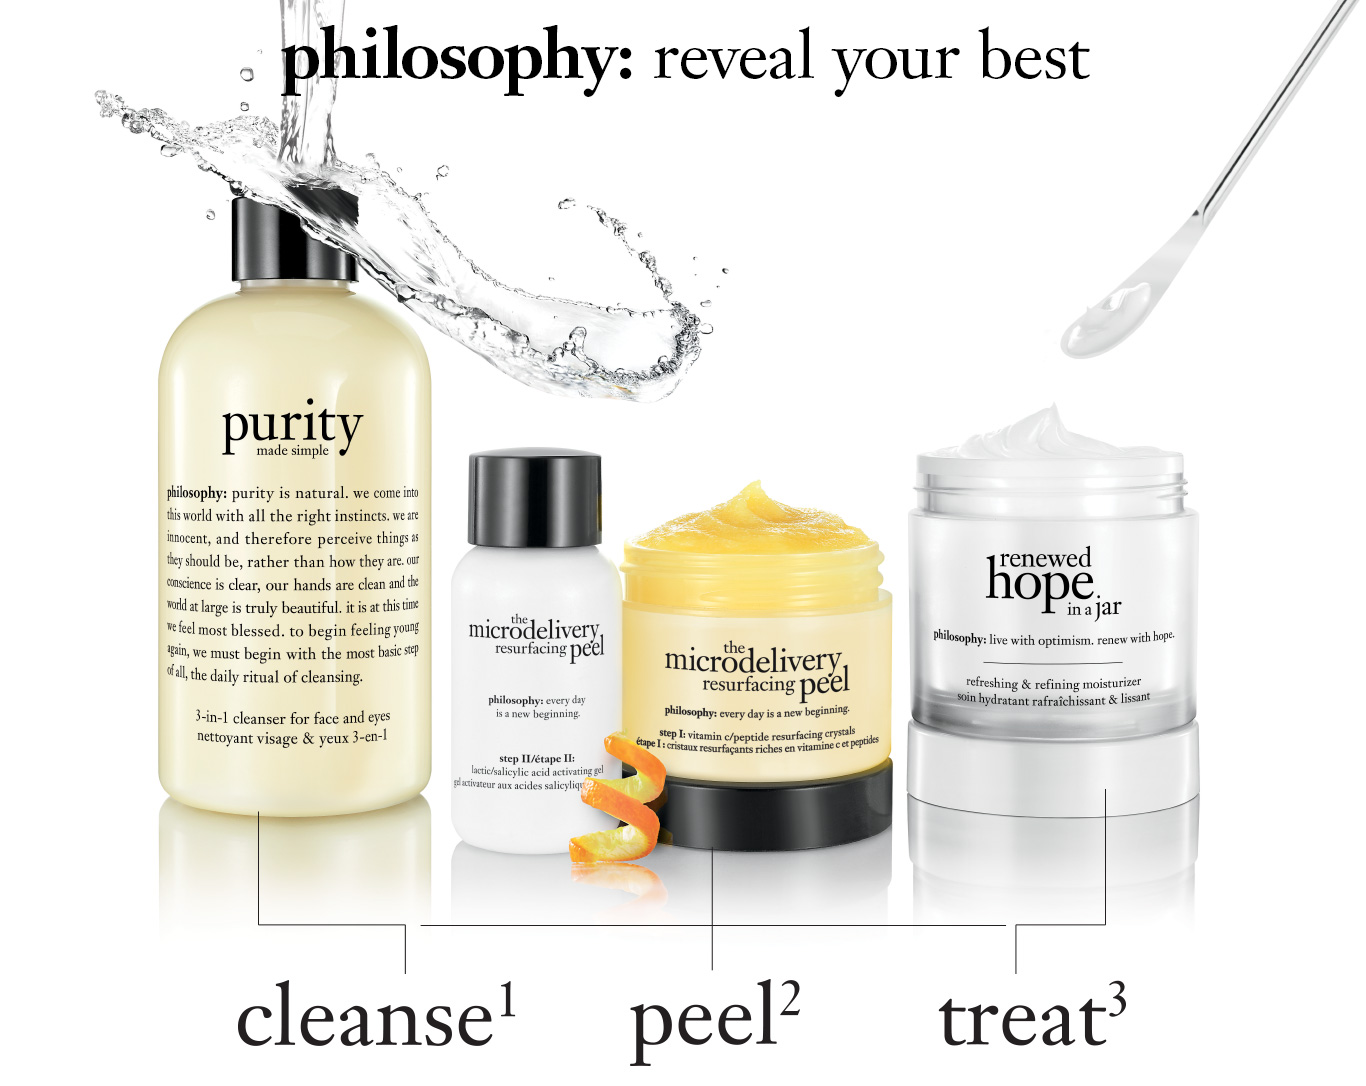 philosophy:reveal your best